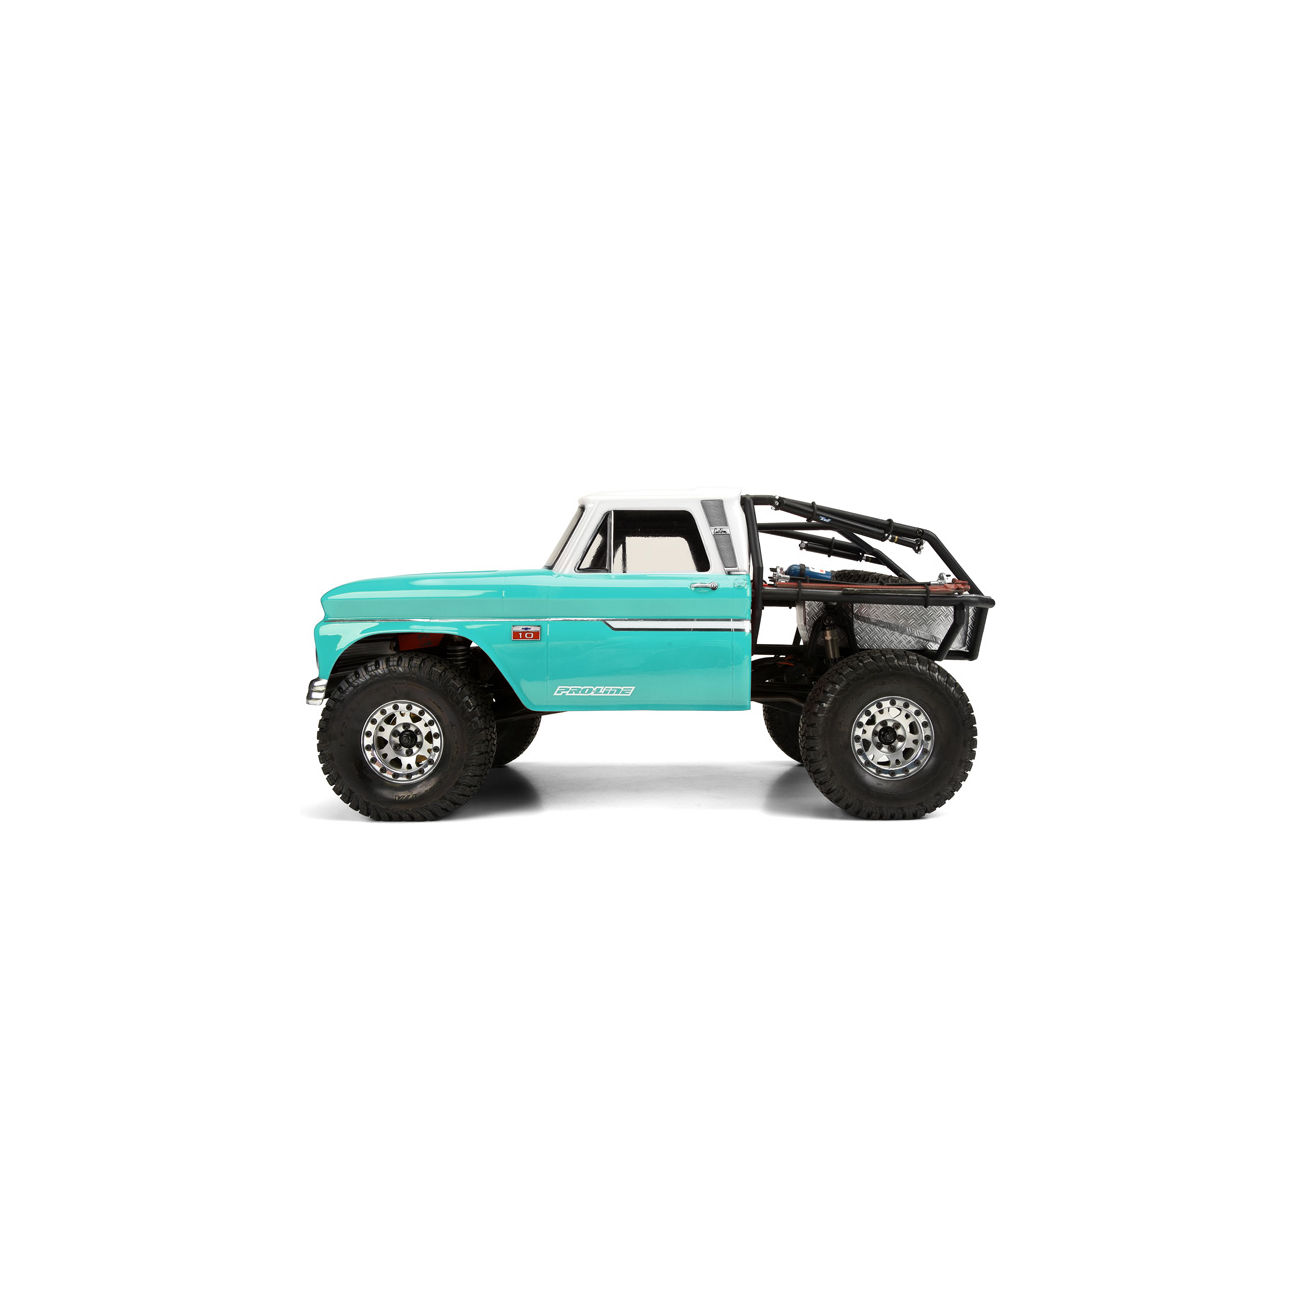 Pro-Line 1:10 Lexan Karosserie Chevrolet C-10 1966 Cab f. Axial Honcho 3483-01 1